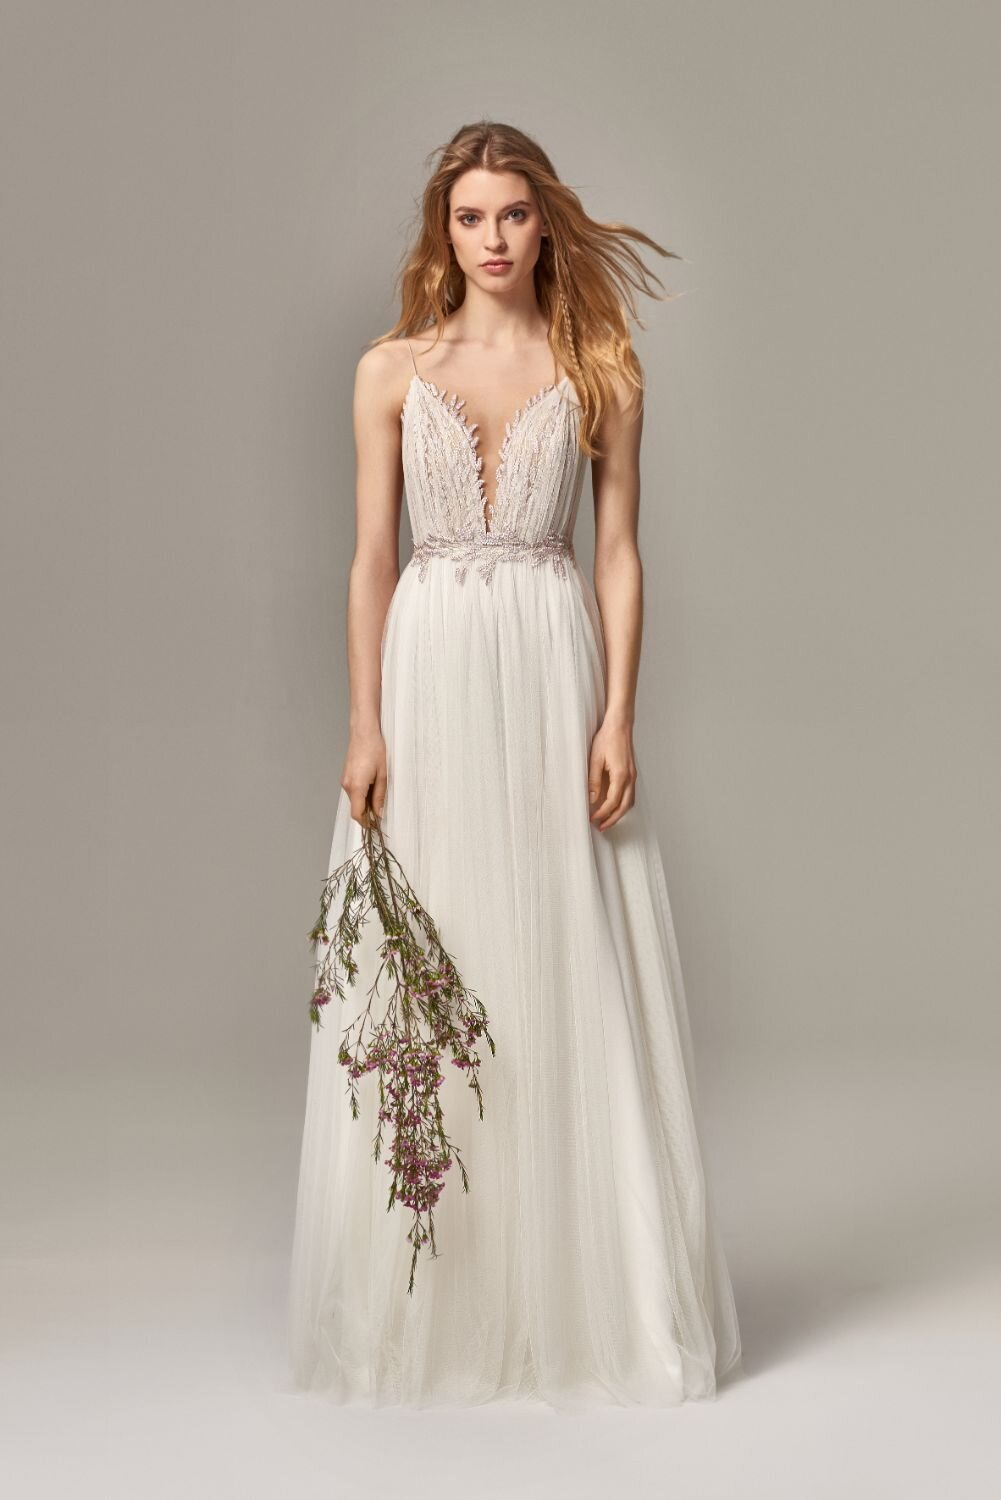 Anna Kara Heather Wedding Dress 2020